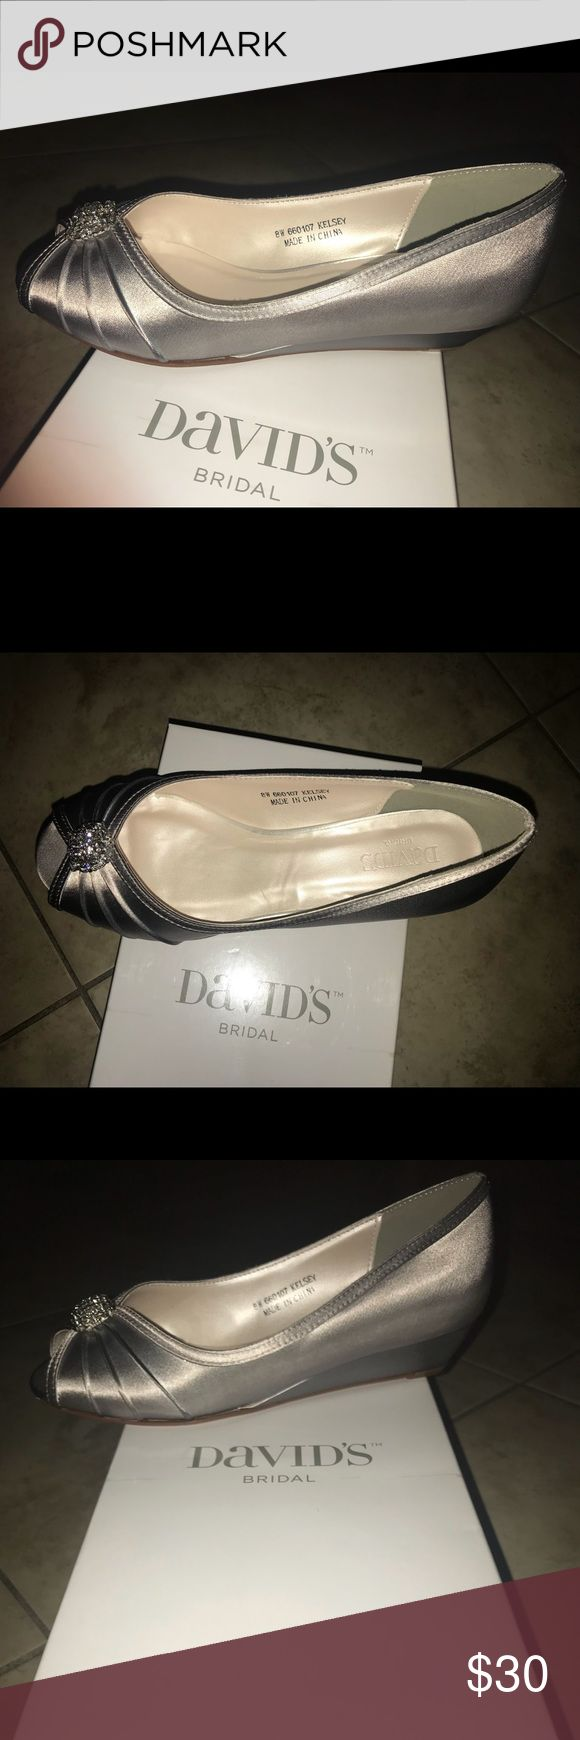 Silver Shoes Silver davids bridal size 8W brand new. They did not fit my mom and it is non-refundable & non-exchangeable. David's Bridal Shoes Wedges